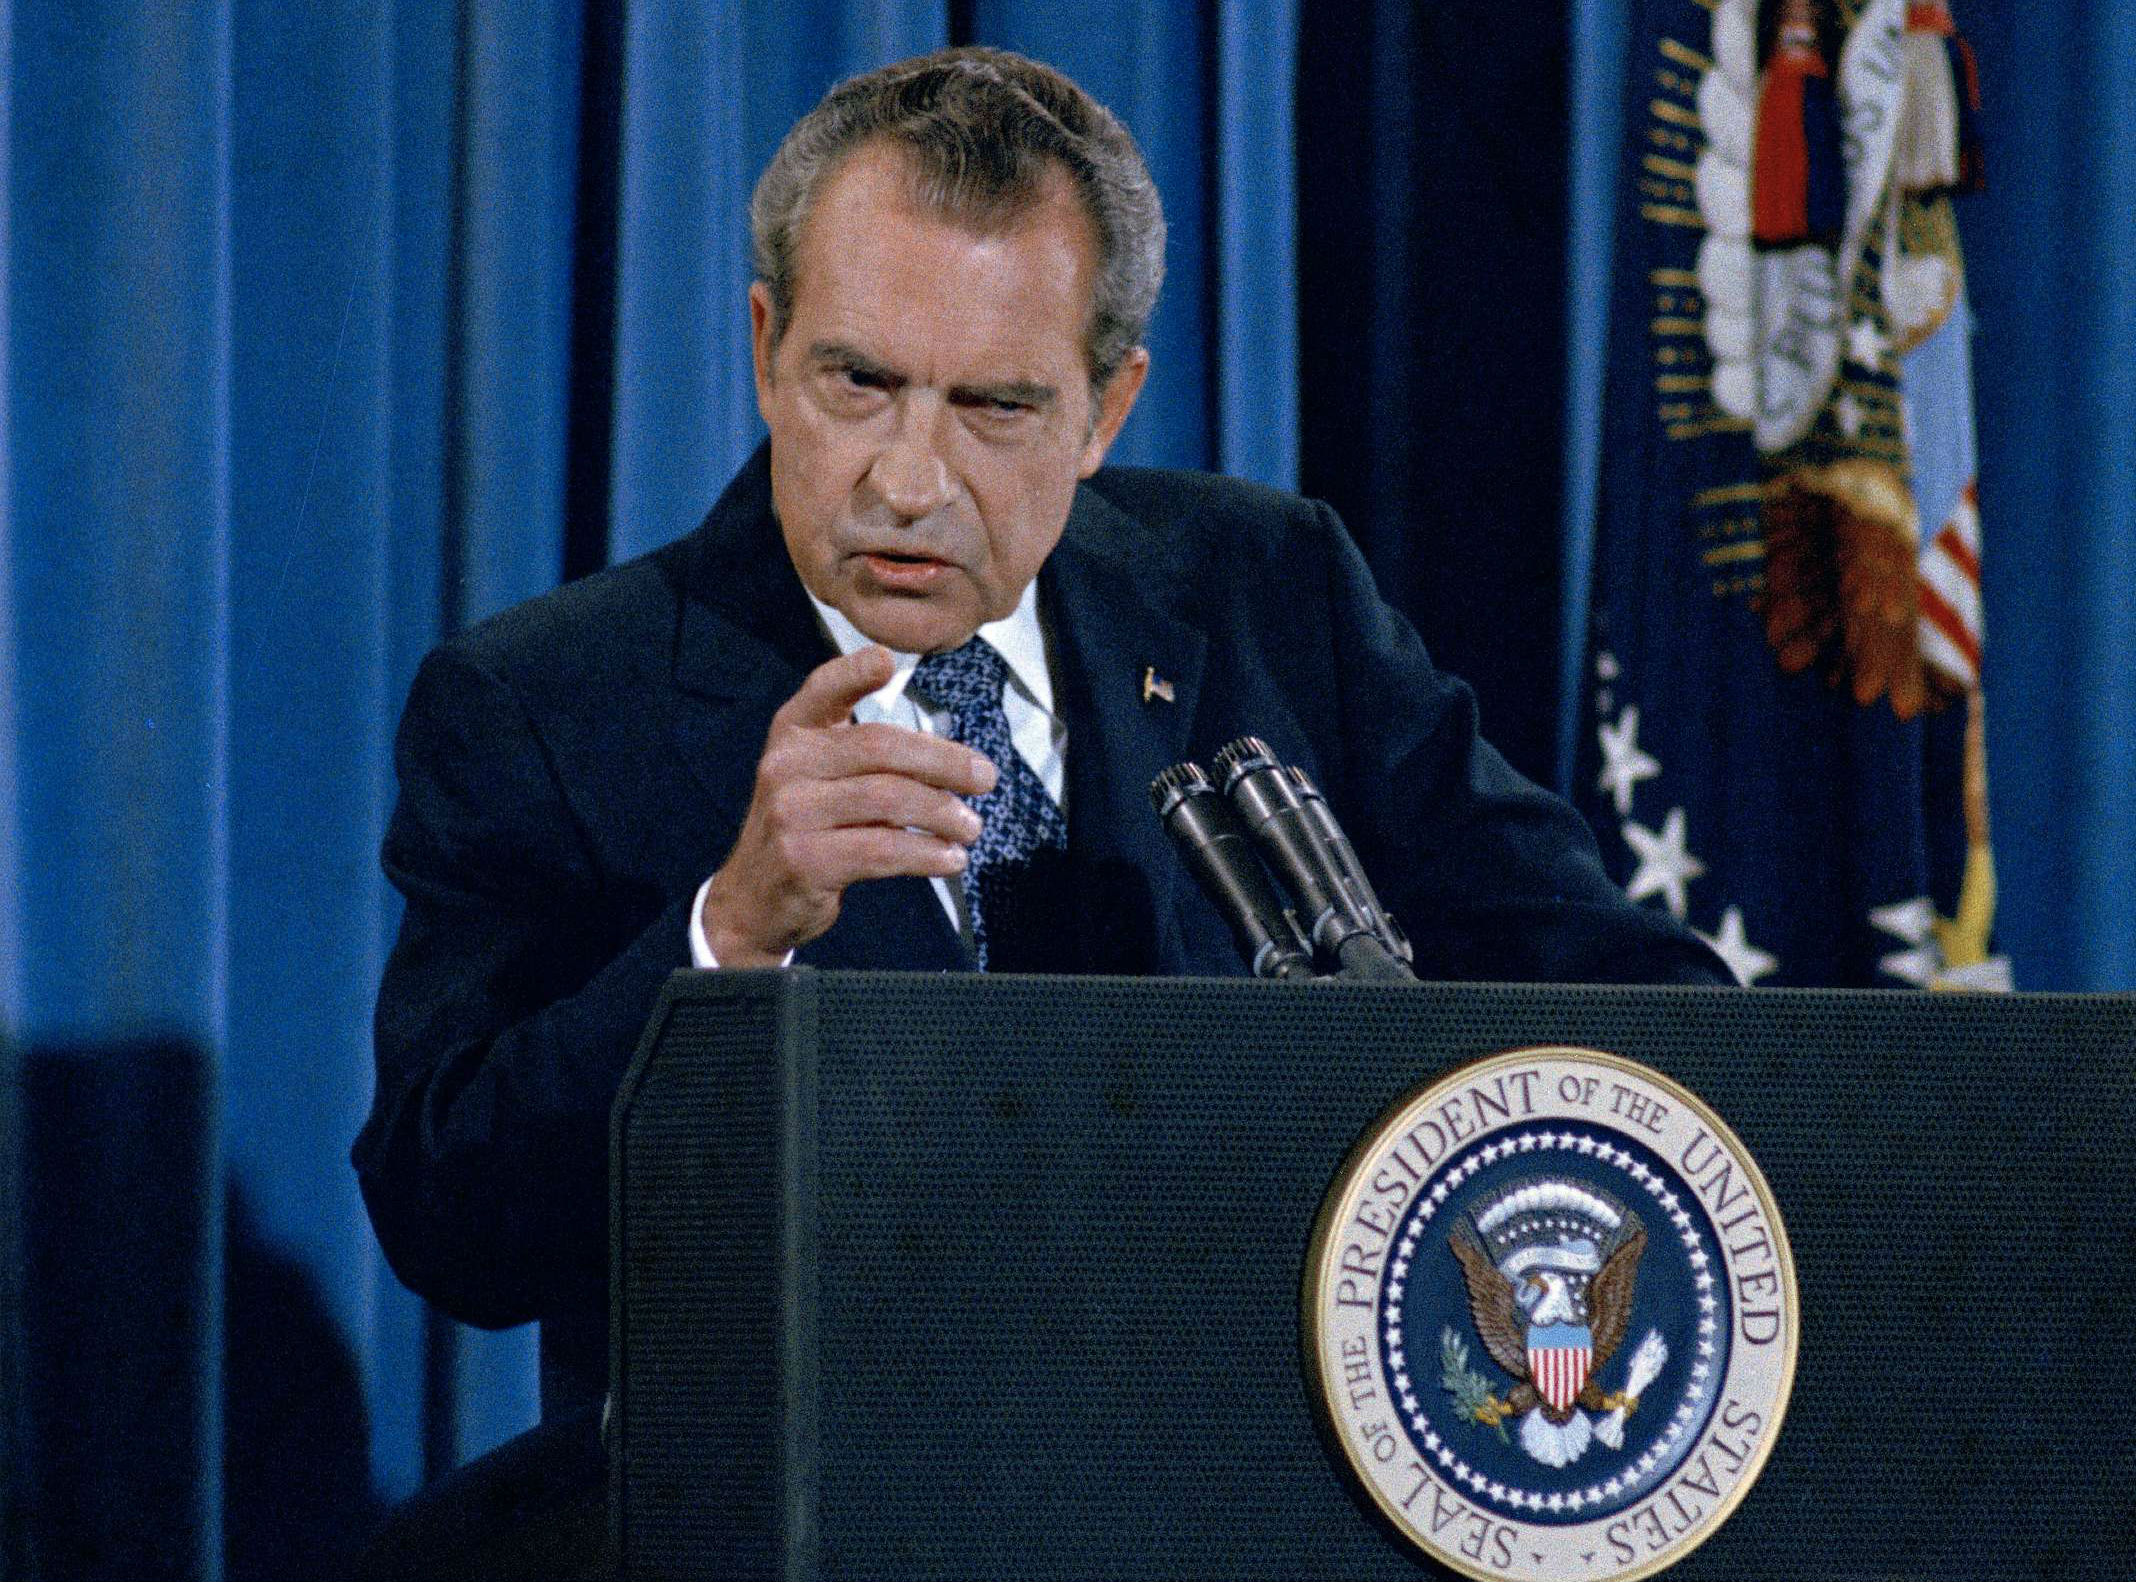 President Richard Nixon gestures sternly during a press conference in Washington in 1973.